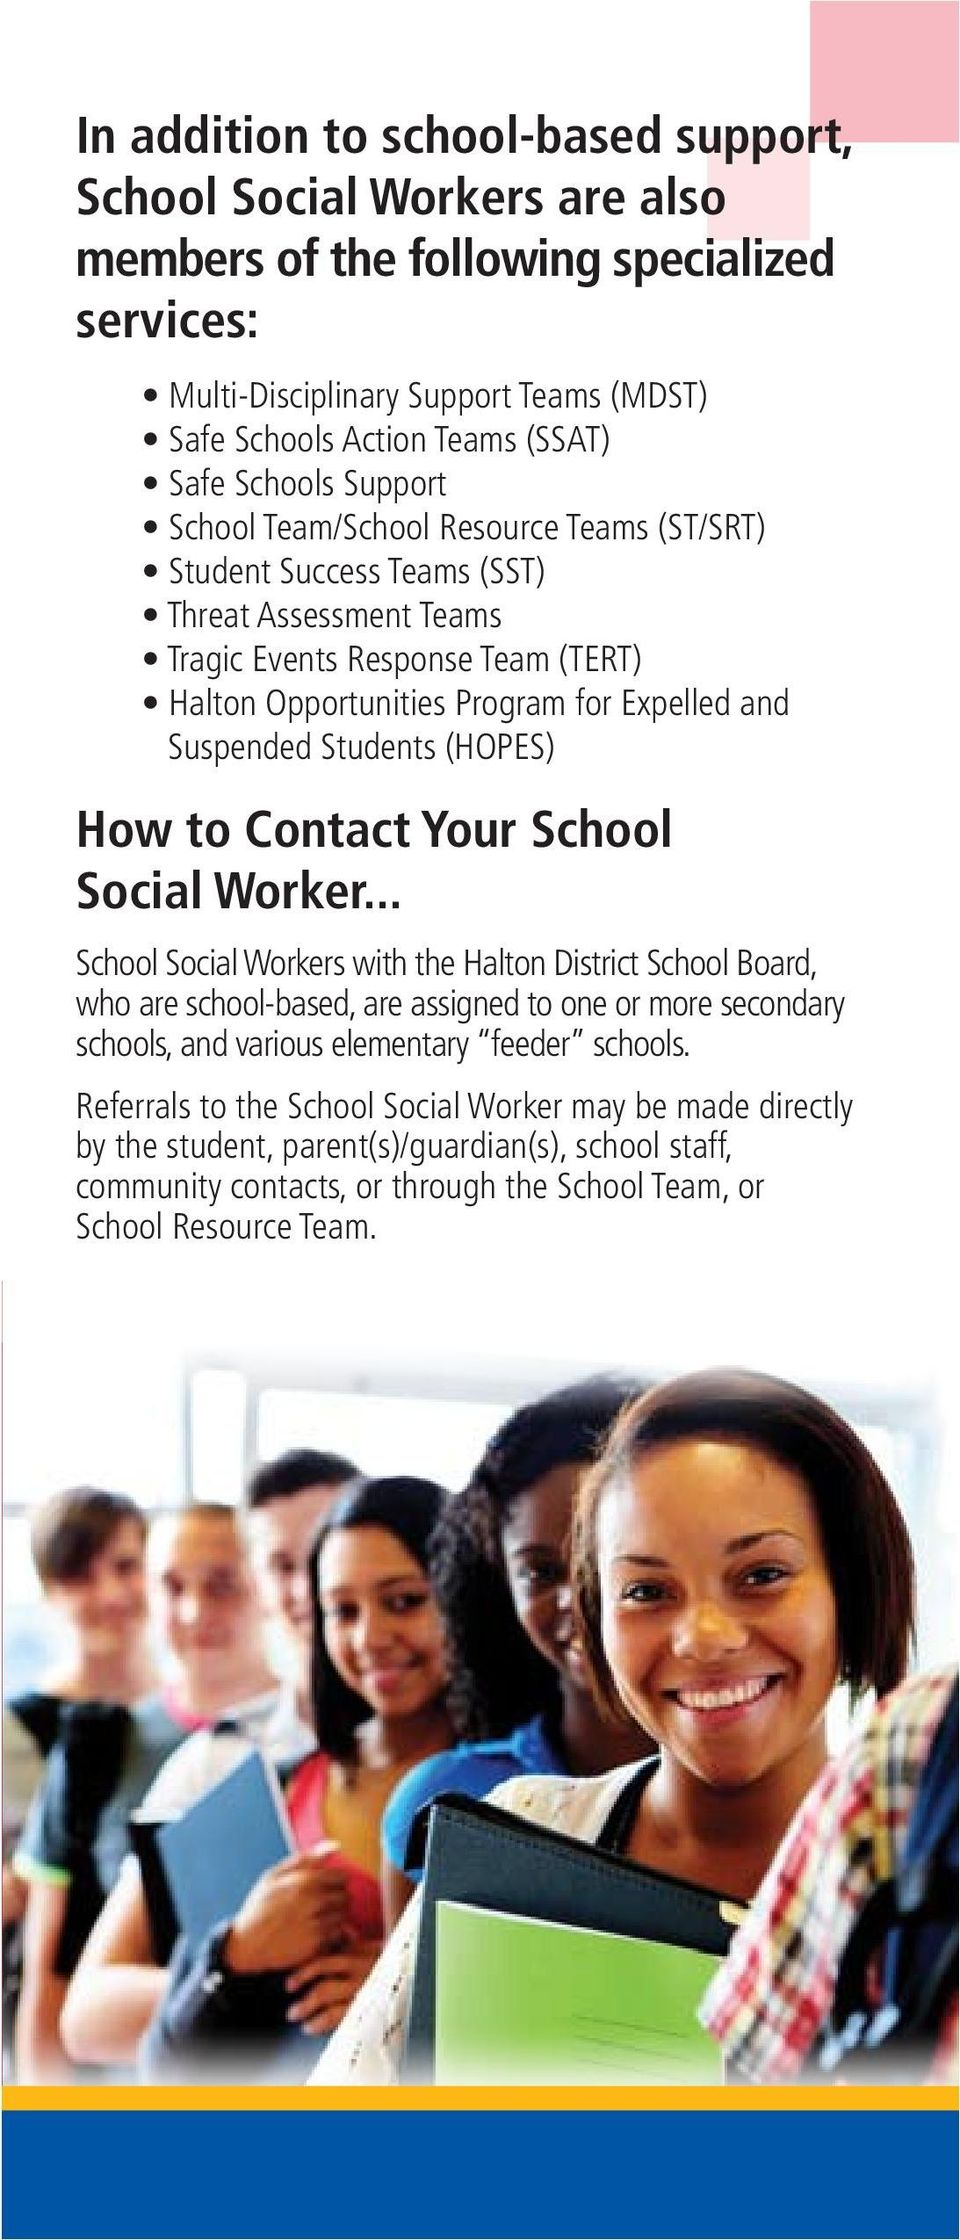 Suspended Students (HOPES) How to Contact Your School Social Worker.